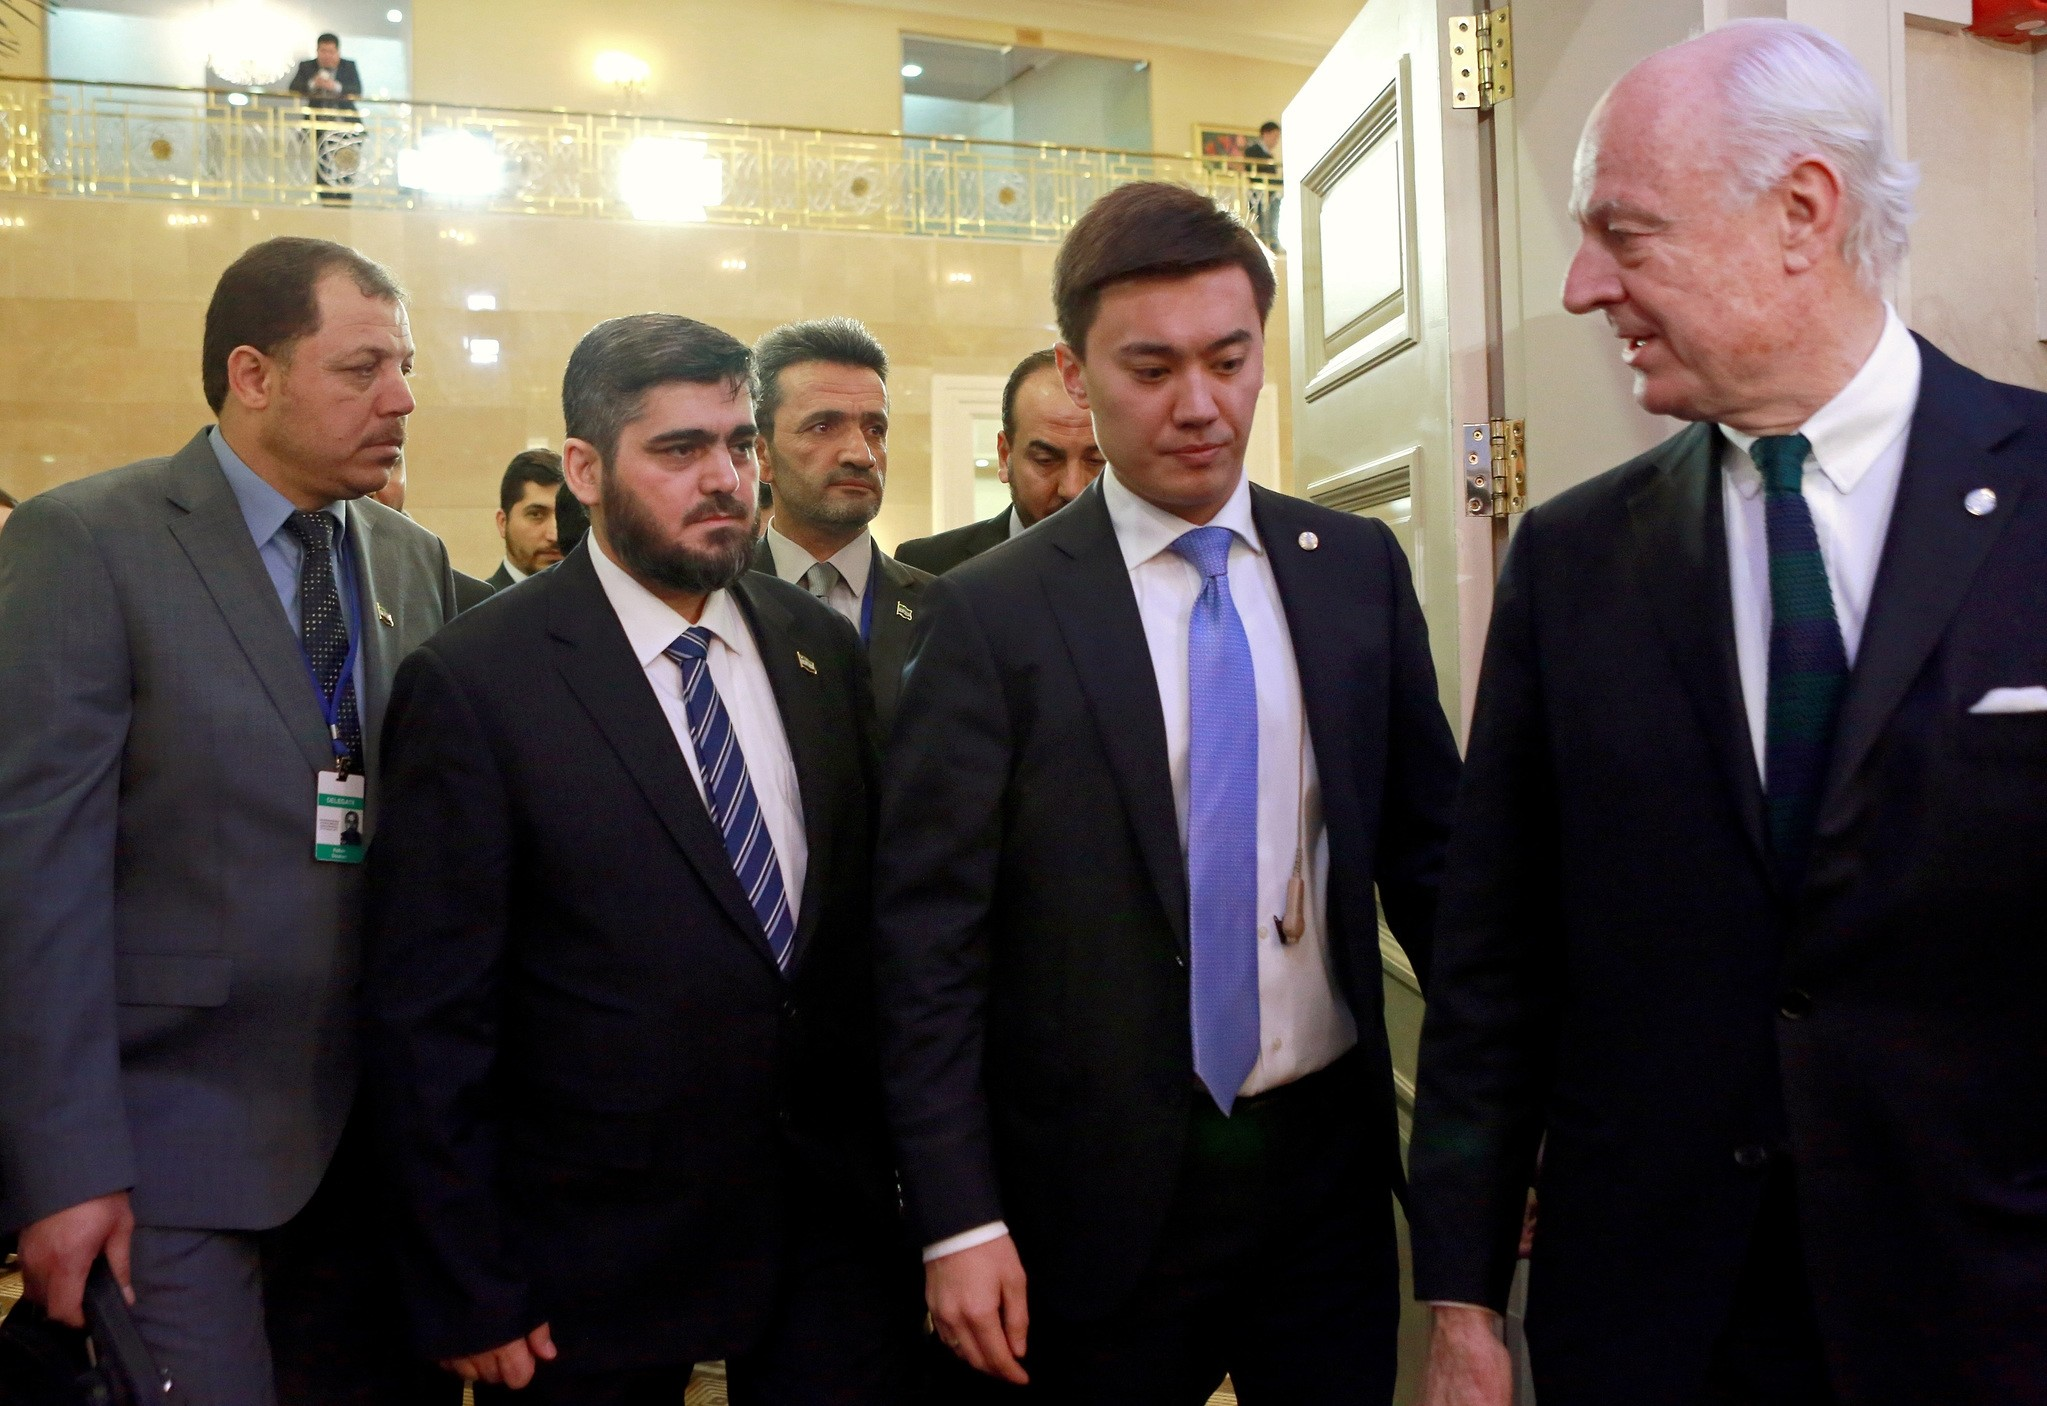 UN Special Envoy Staffan de Mistura (R) and Mohammed Alloush, the Syrian leader of the opposition delegation (L-2) arrive for talks on the Syrian conflict, Astana, Kazakhstan, 23 January 2017. (EPA Photo)